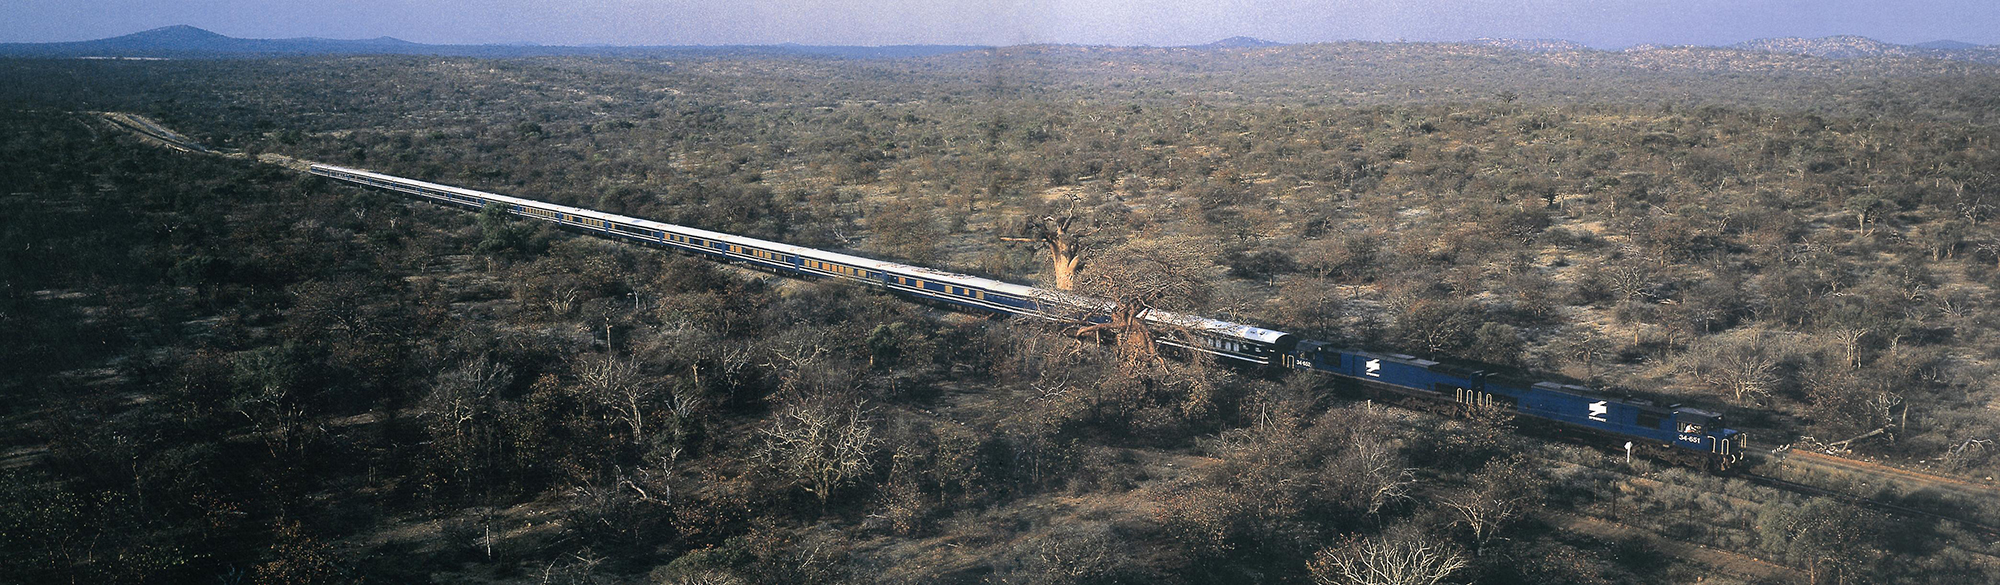 Blue Train in Karoo